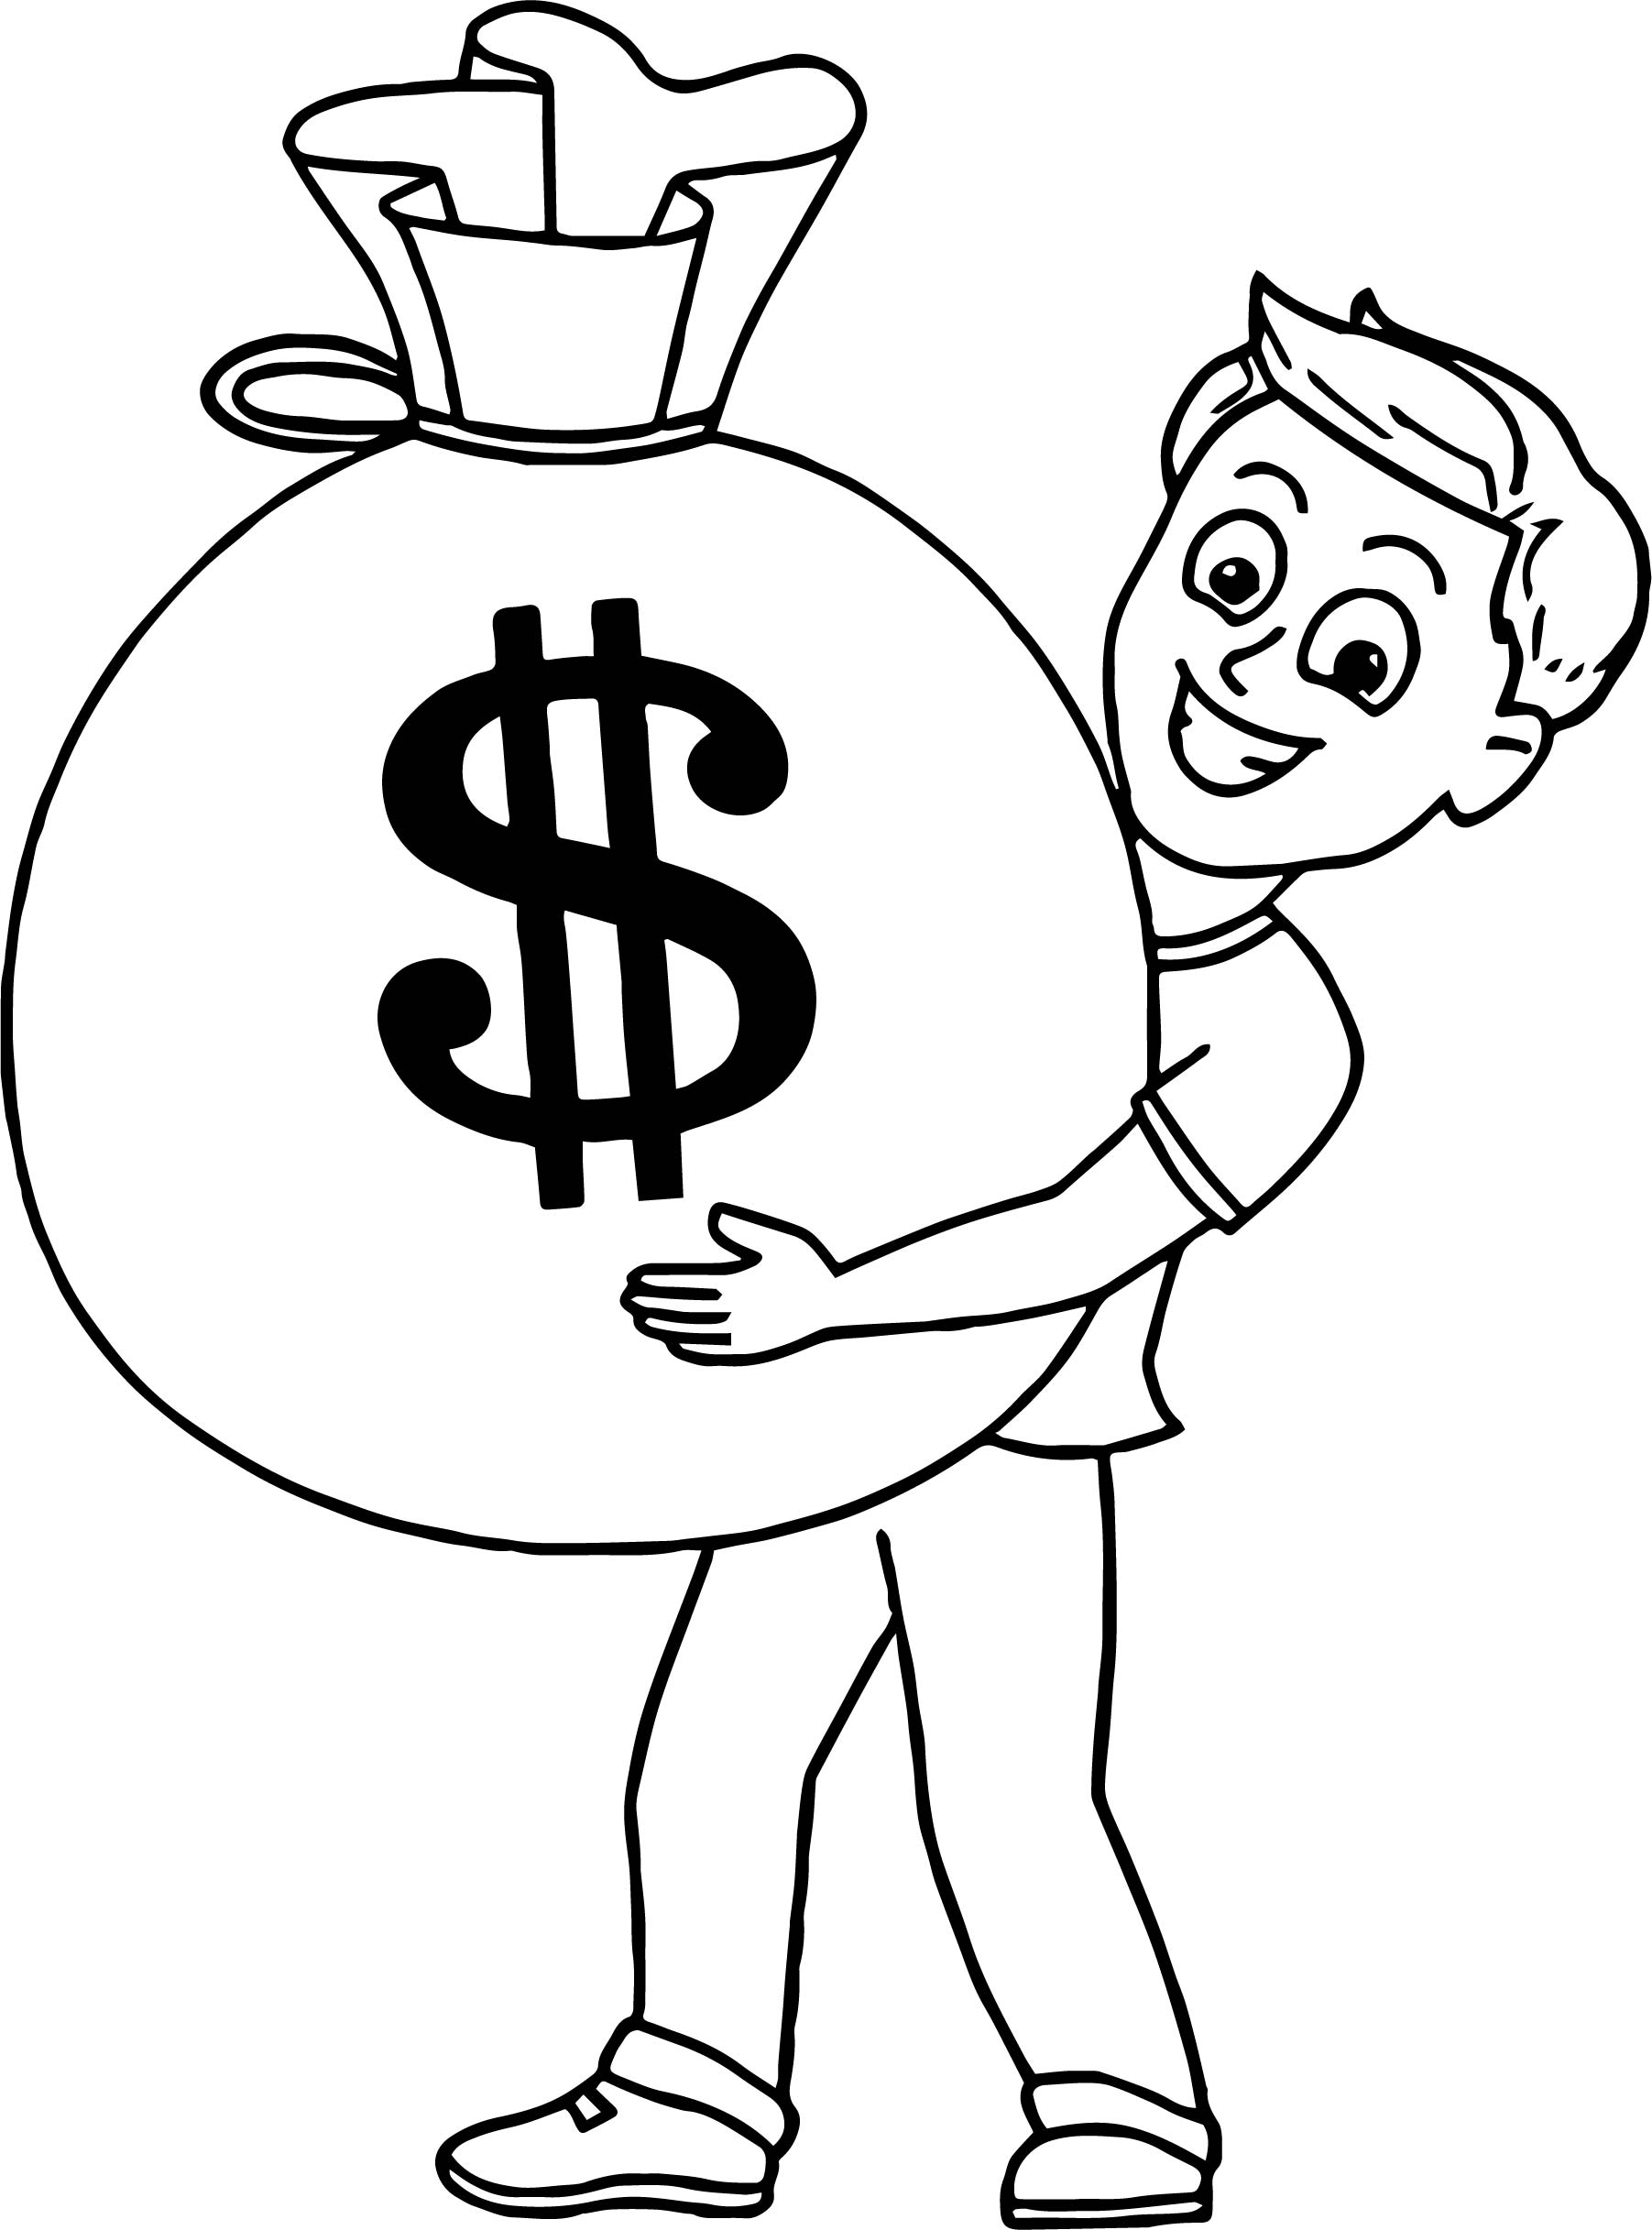 Jackpot Winner Holding Bag Of Money Coloring Page